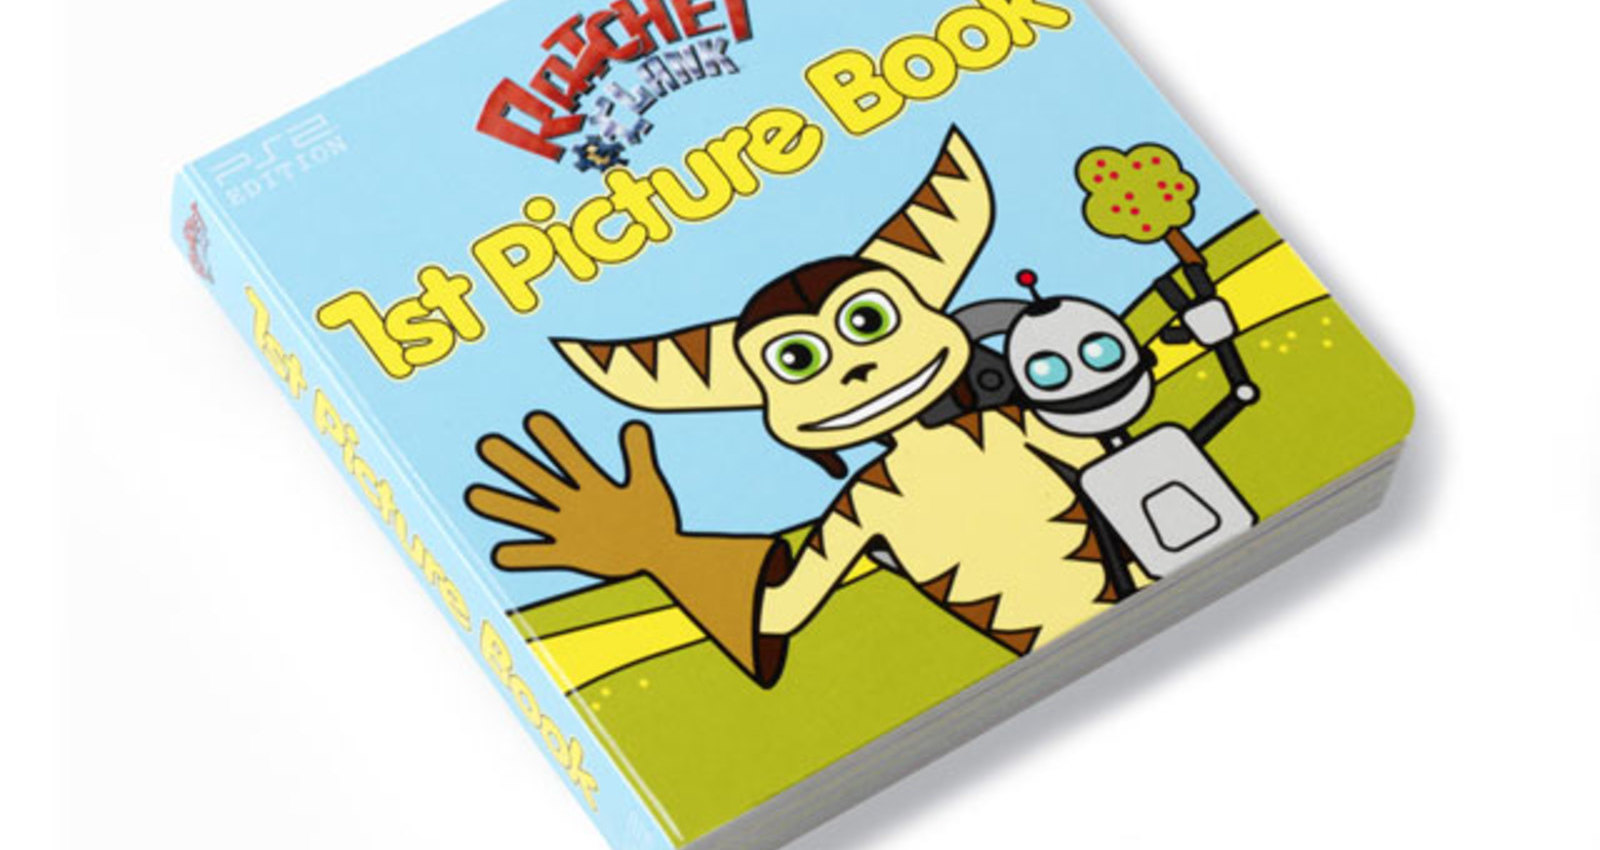 Ratchet & Clanks' 1st Picture Book